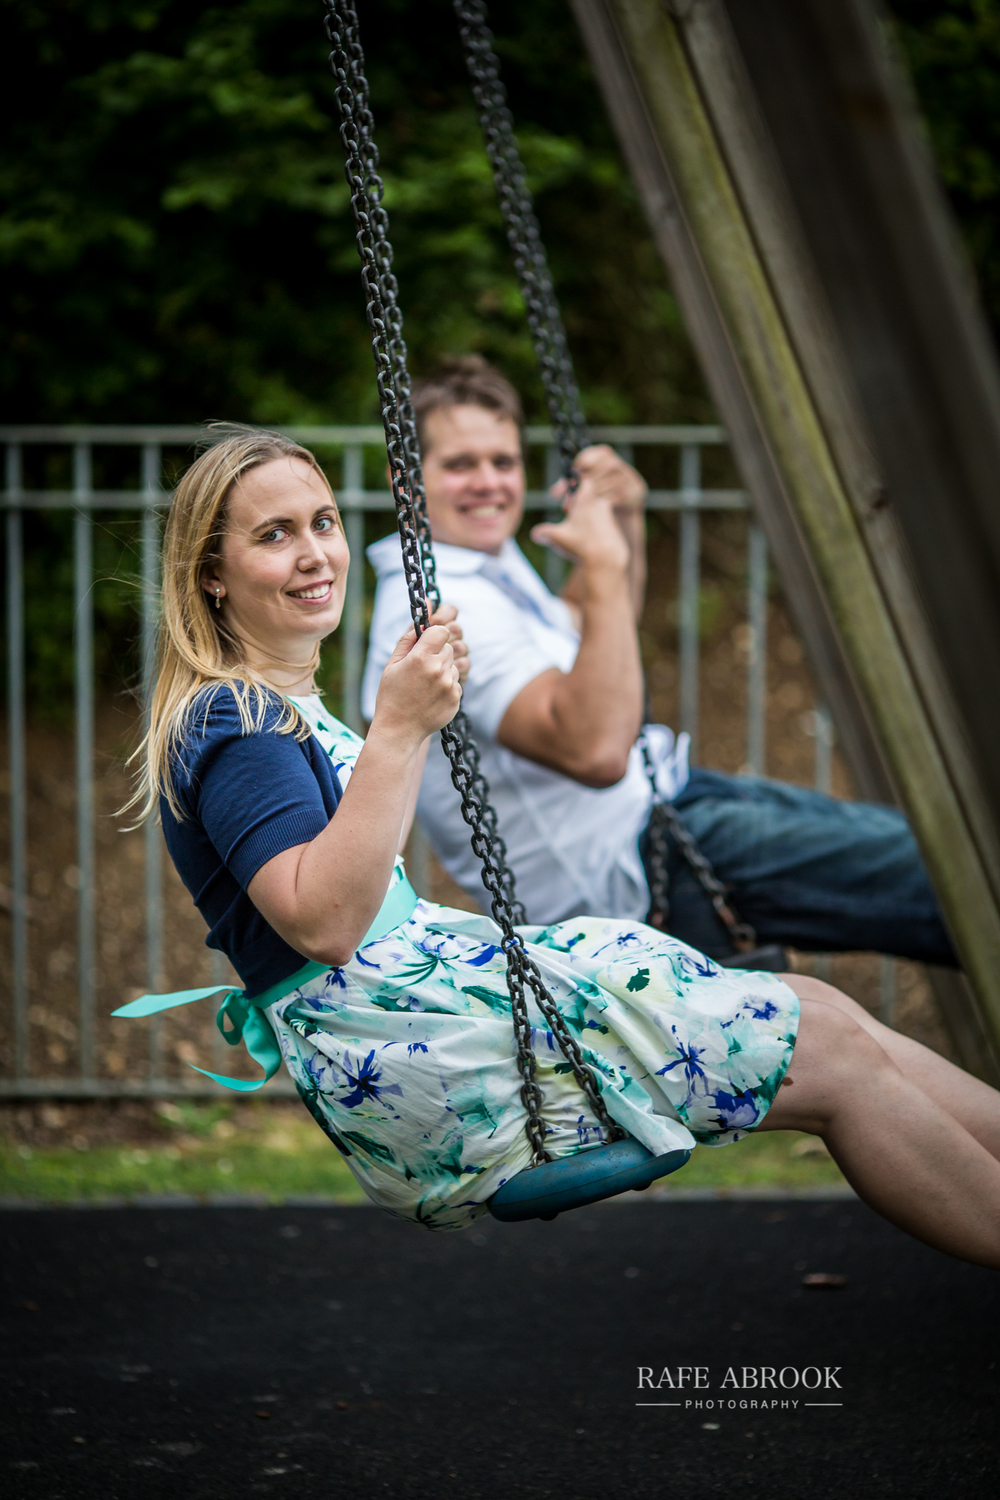 melanie & graham engagement shoot great ashby district park stevenage hertfordshire-1042.jpg